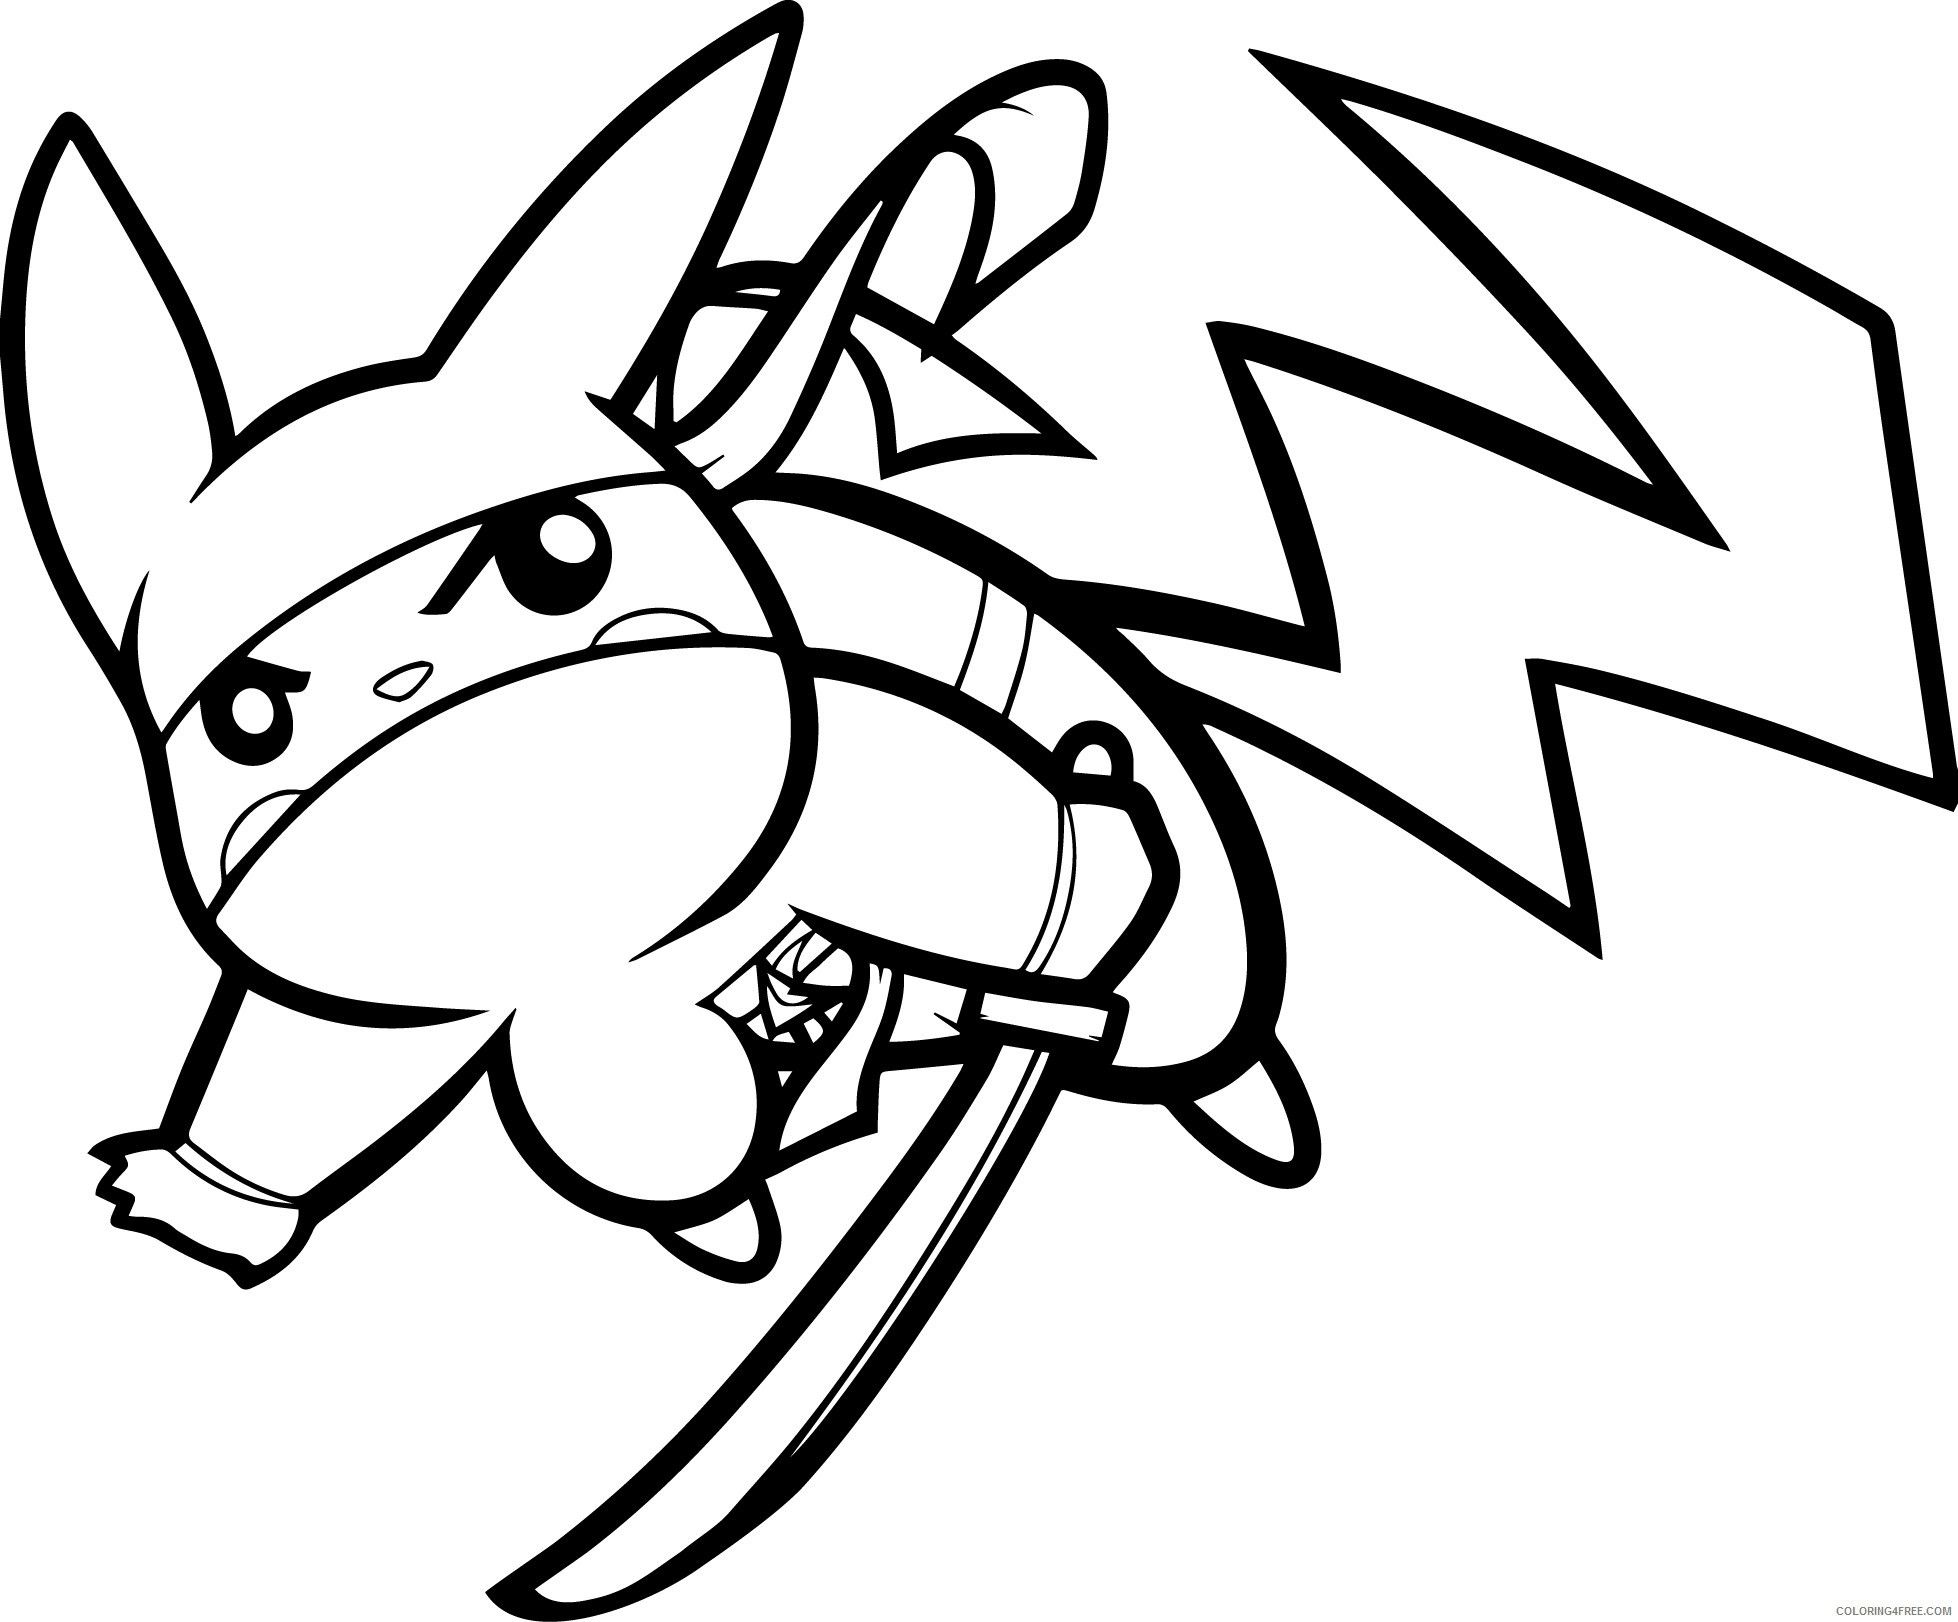 Pikachu Ninja Coloring Page From the thousands of photos